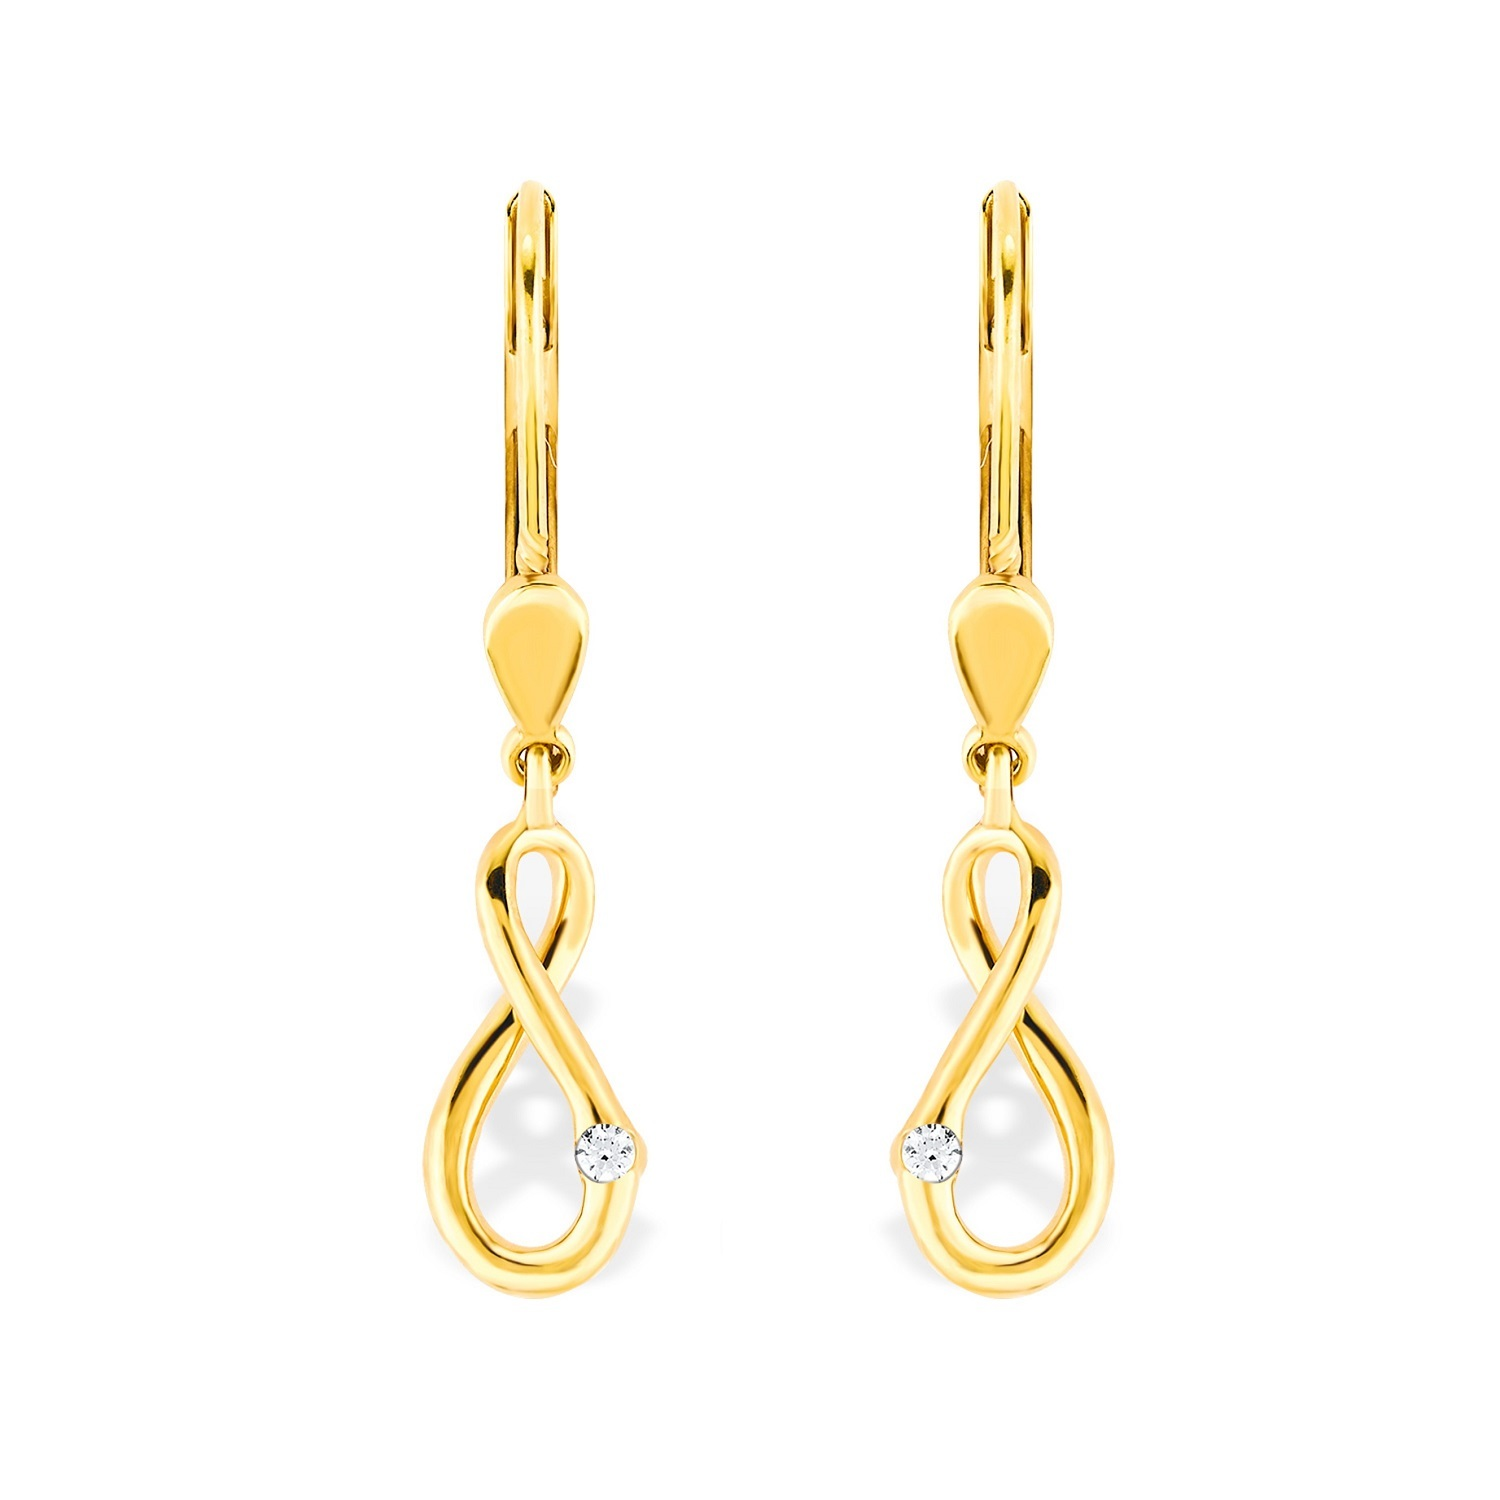 Ohrring Gold 375/9 ct Zirkonia synth. Infinity